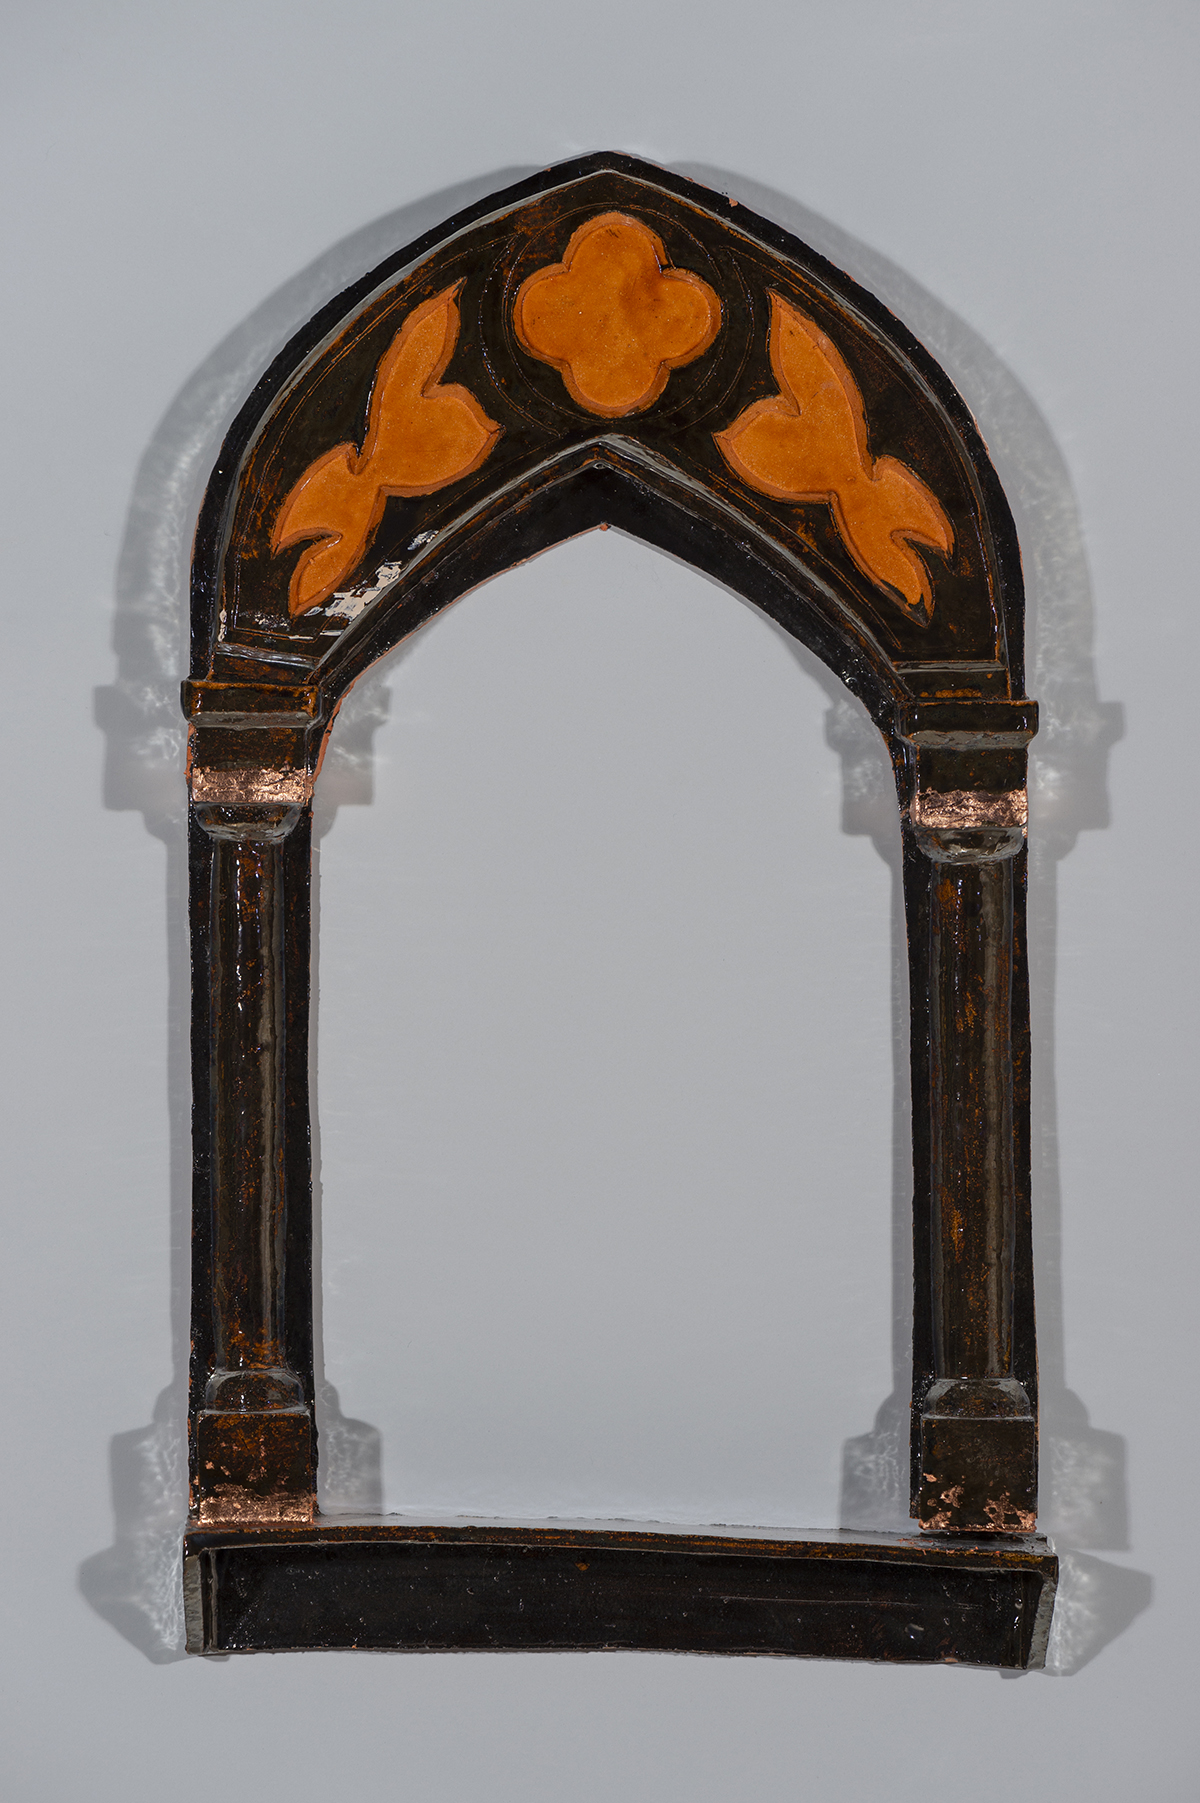 a ceramic frame mounted on a wall.